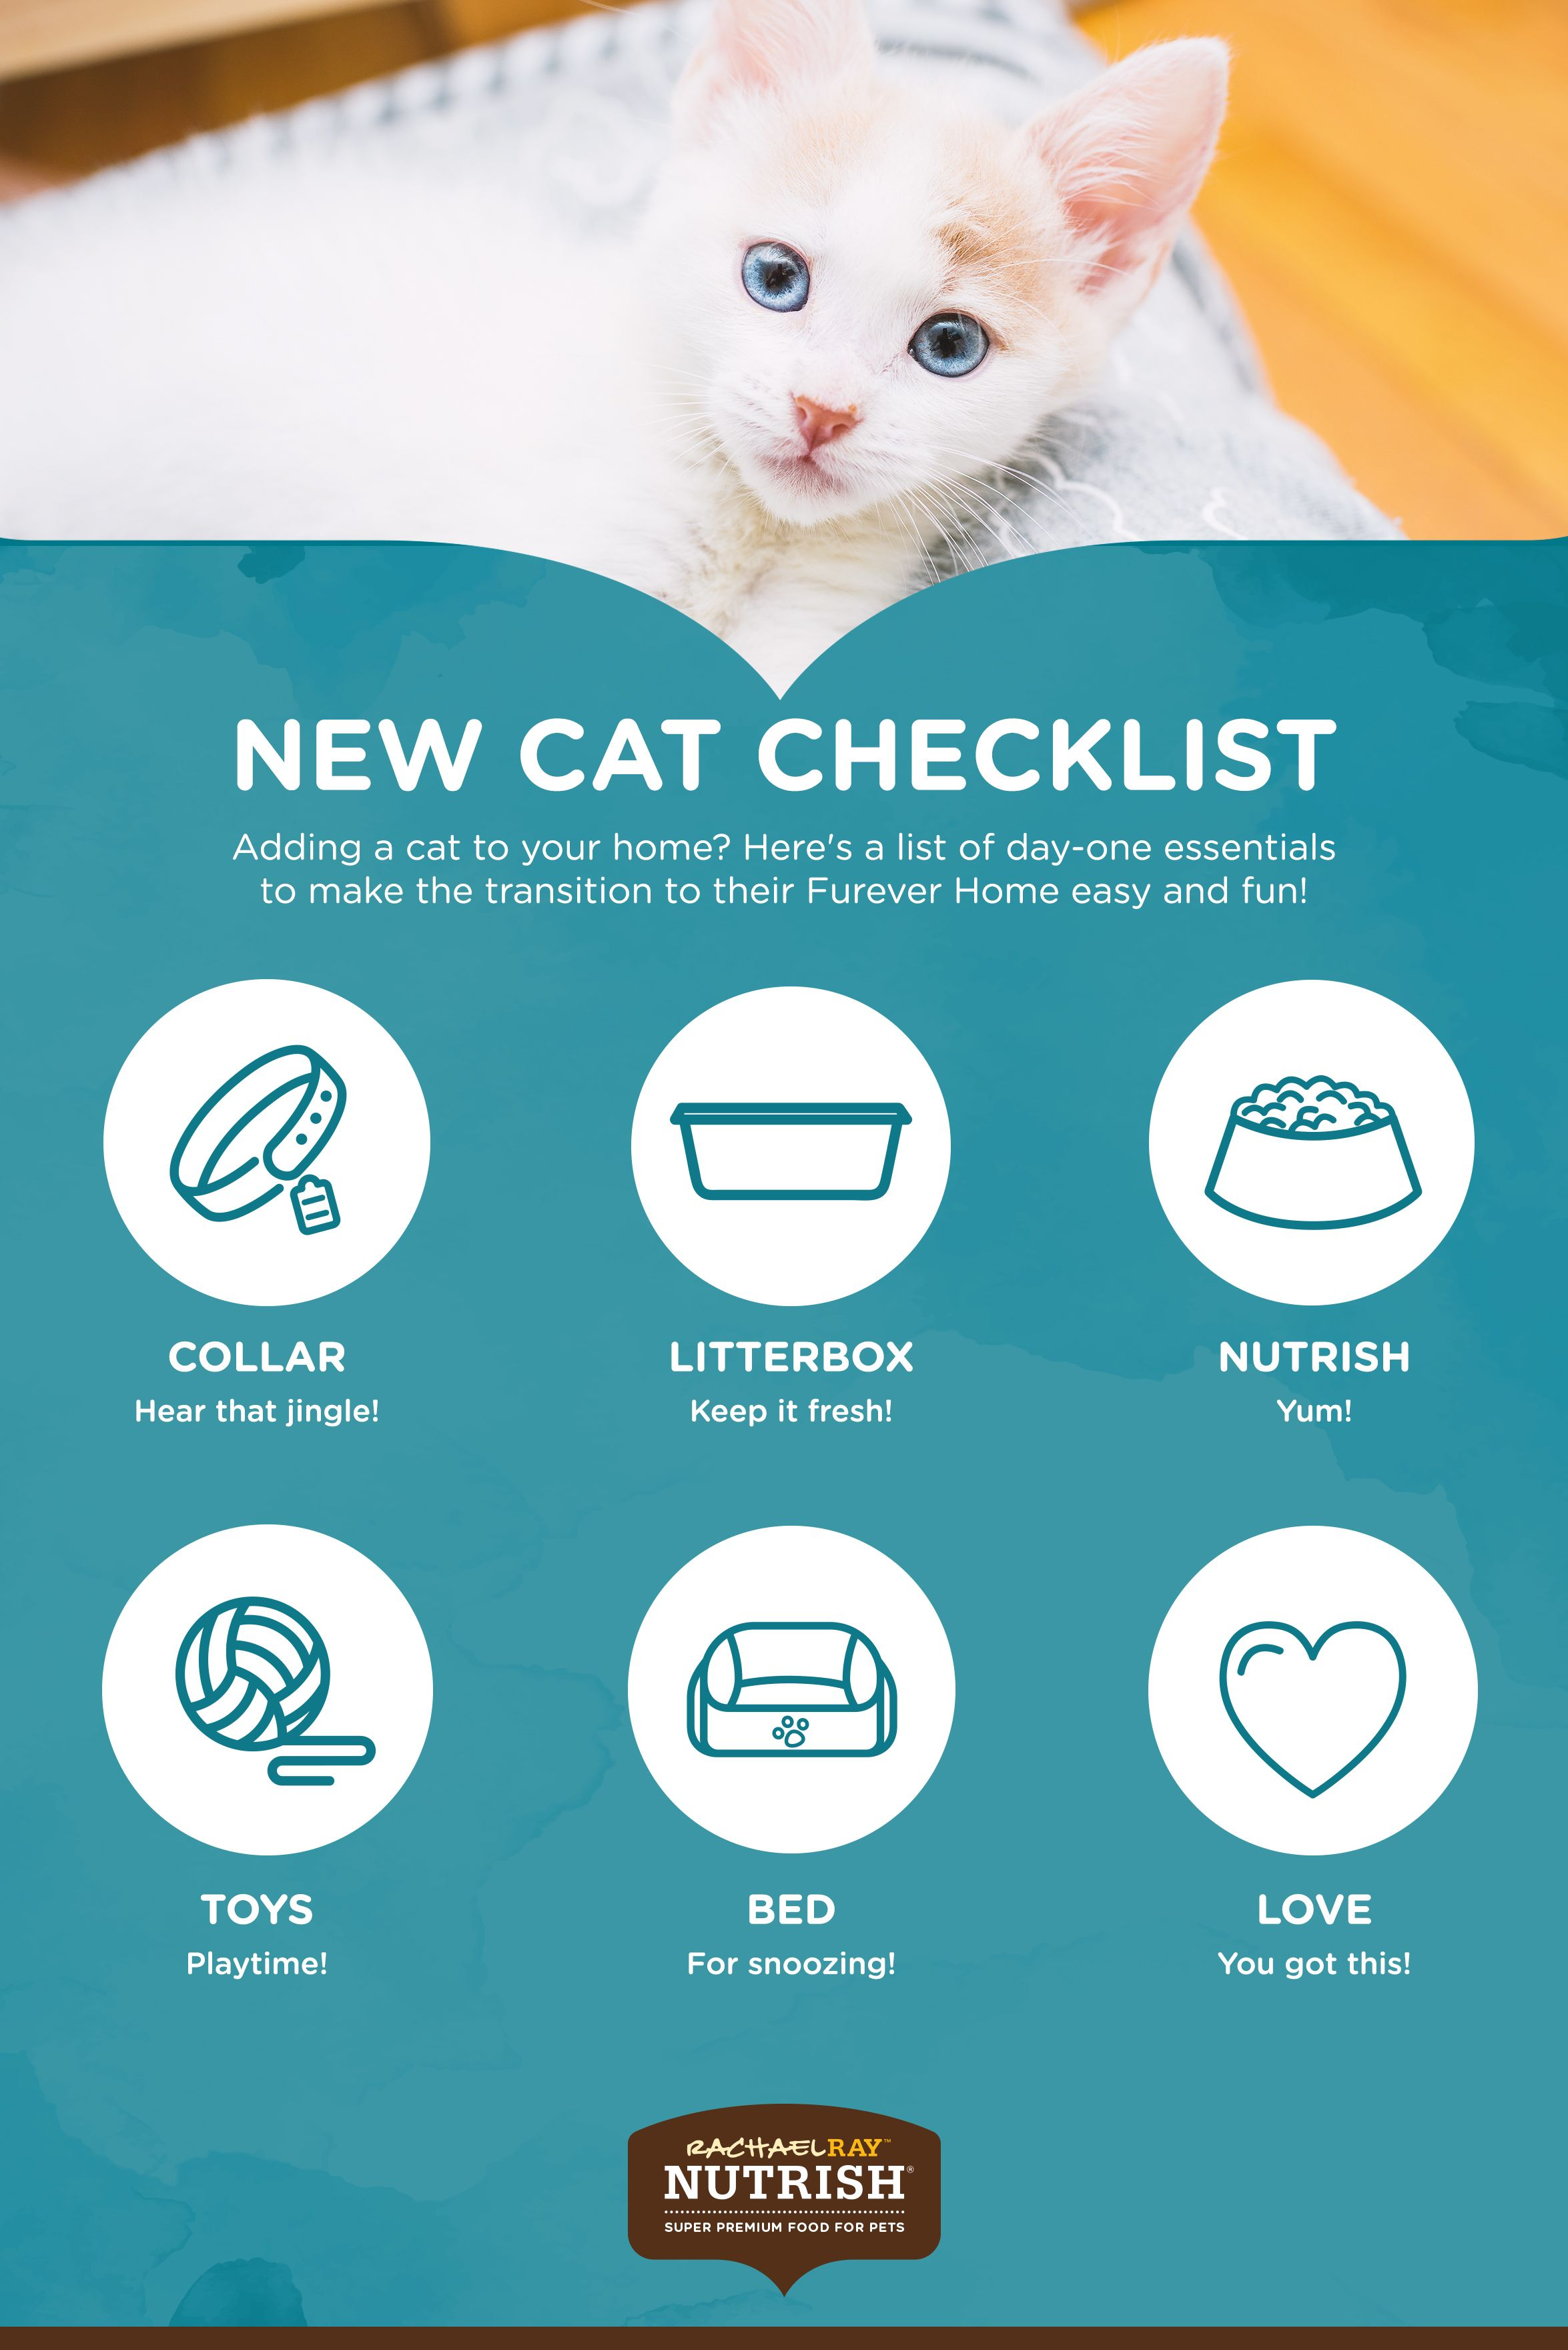 When A New Cat Comes Home Consult Our Infographic For Important